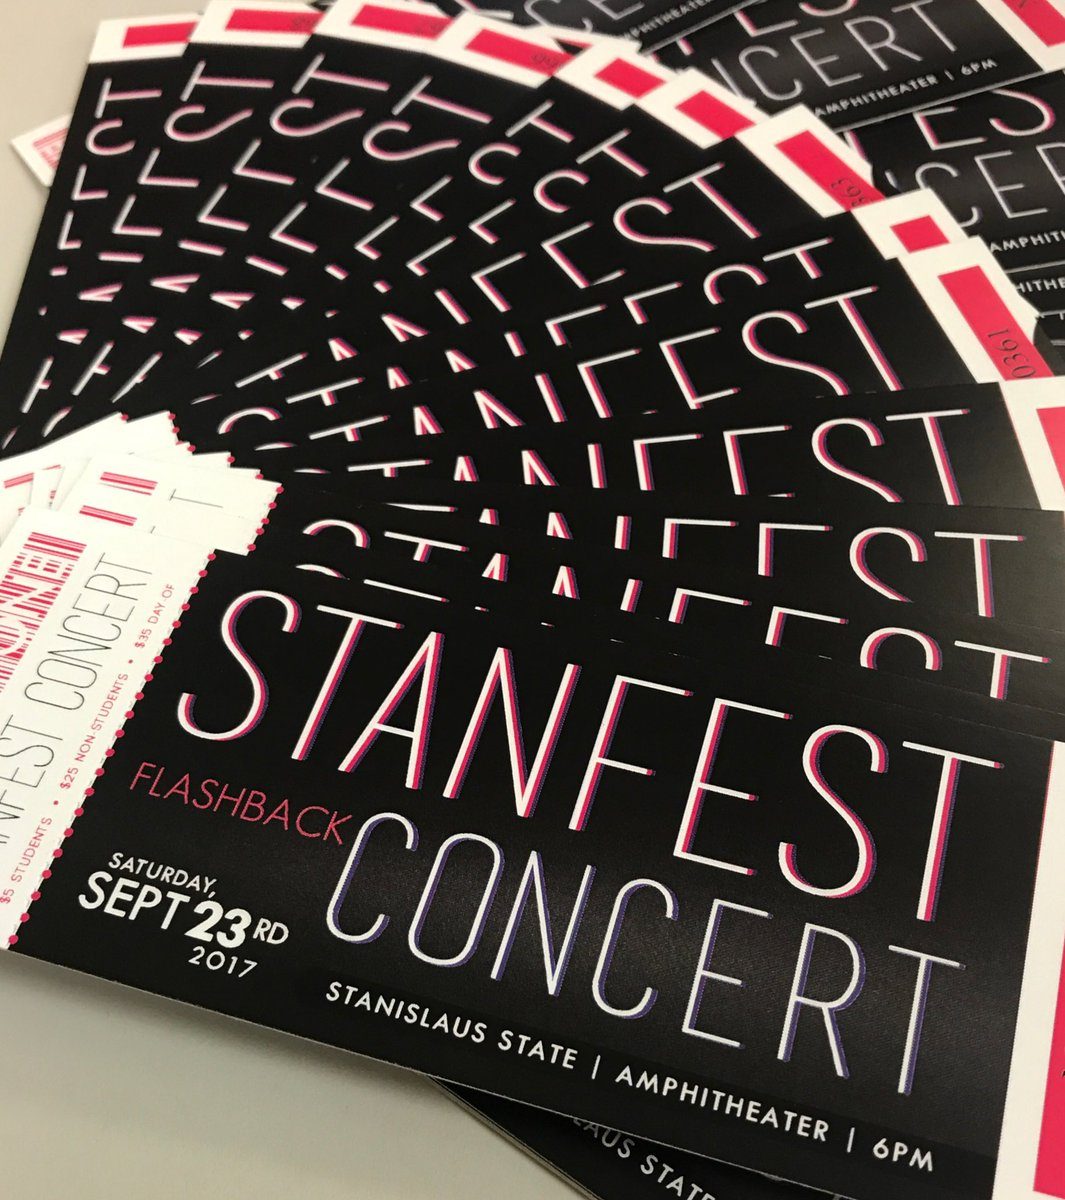 Warrior Activities On Twitter Have You Picked Up Your Ticket For Stanfest2017 Yet Only 5 At The Usu Service Desk Https T Co Ggt0ygfh3v